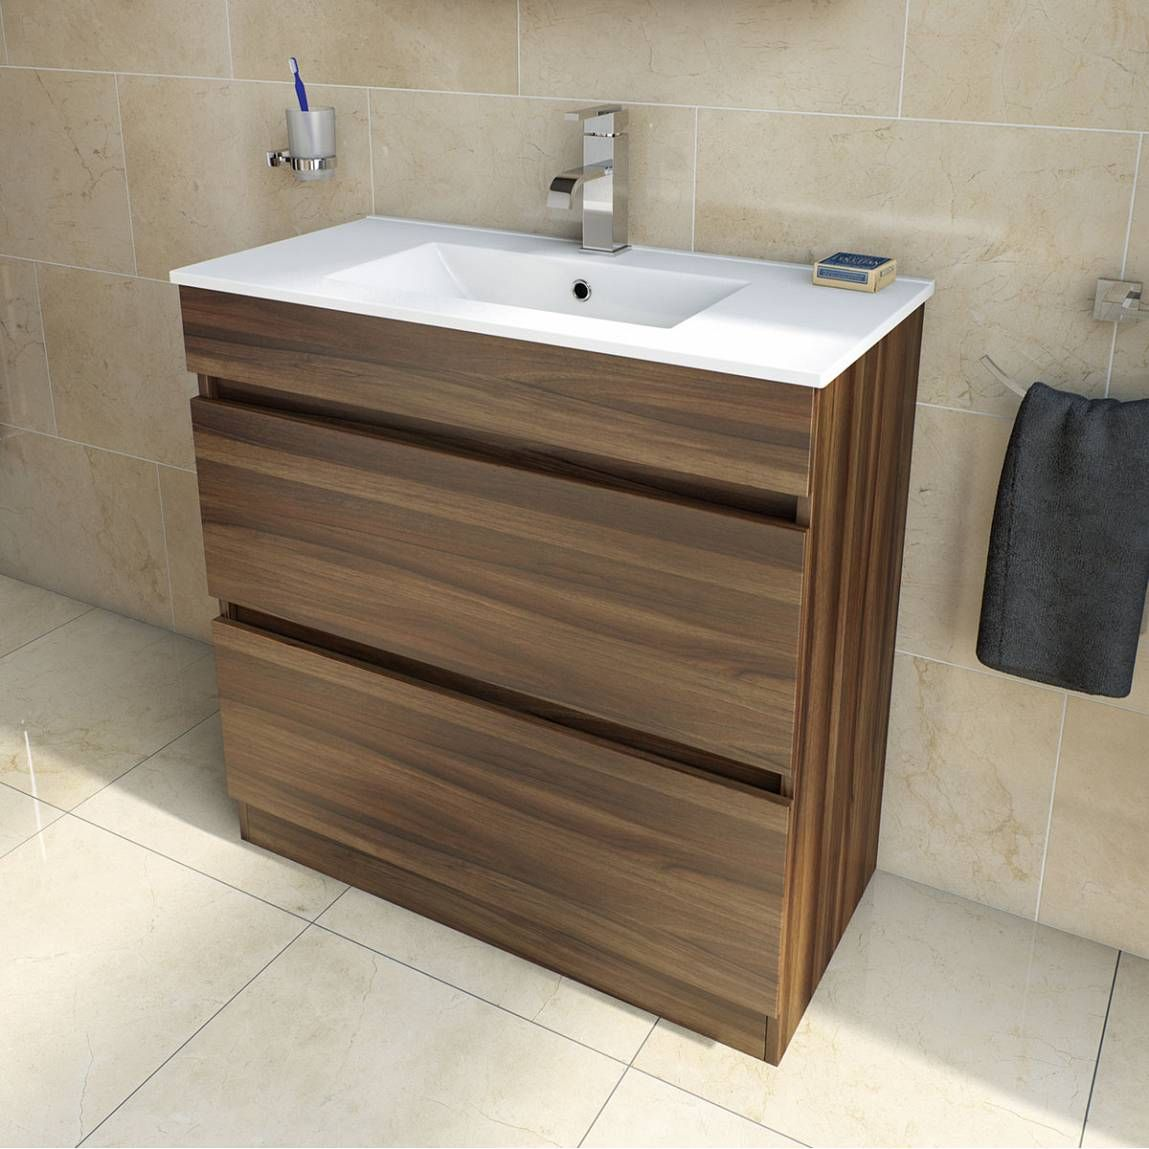 Bathroom Accessories Victoria Plumb plan walnut vanity drawer unit and basin 800mm | walnut floors